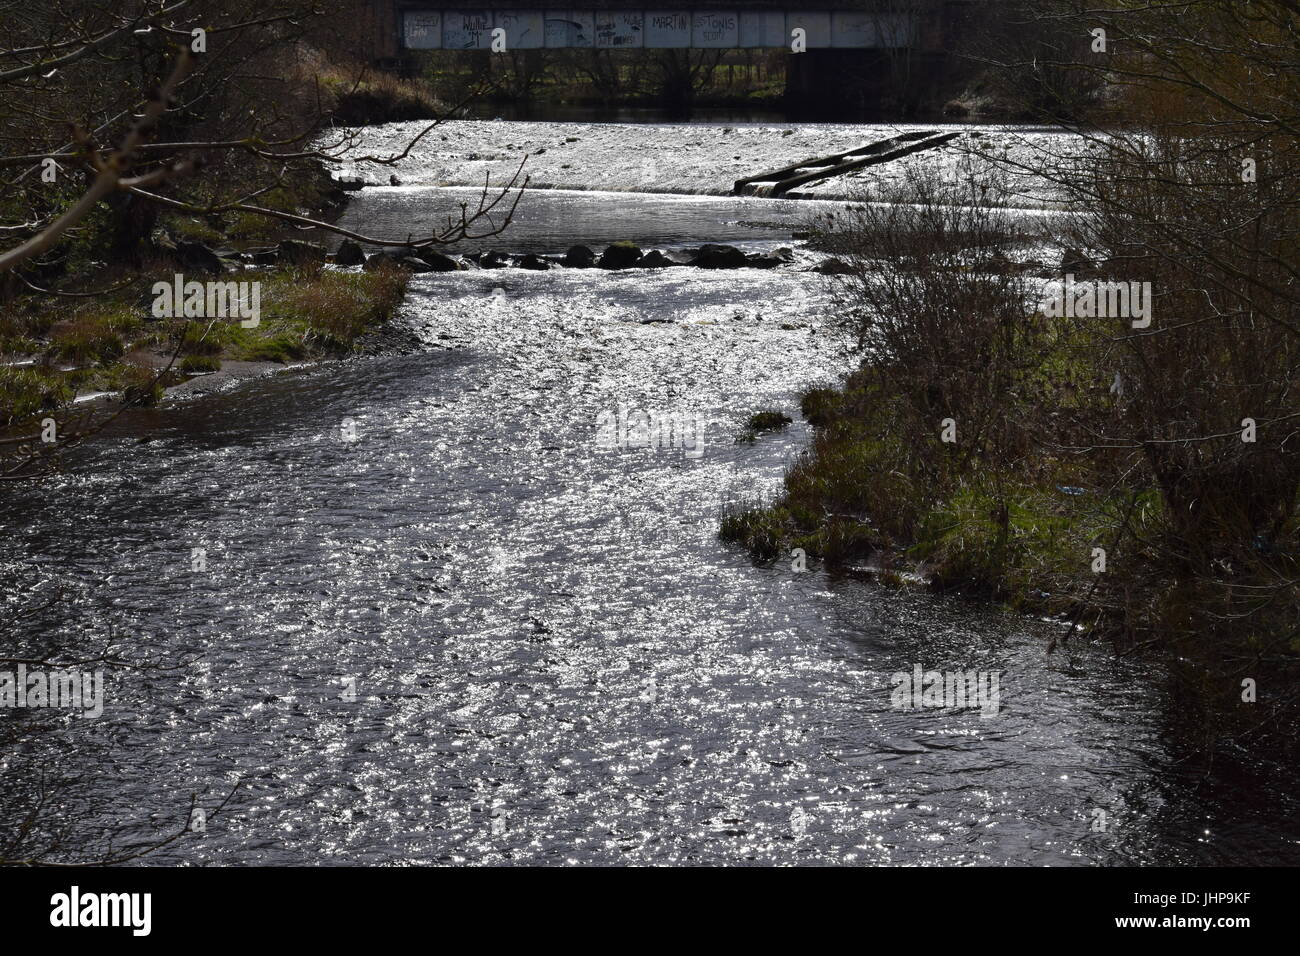 River over a weit - Stock Image